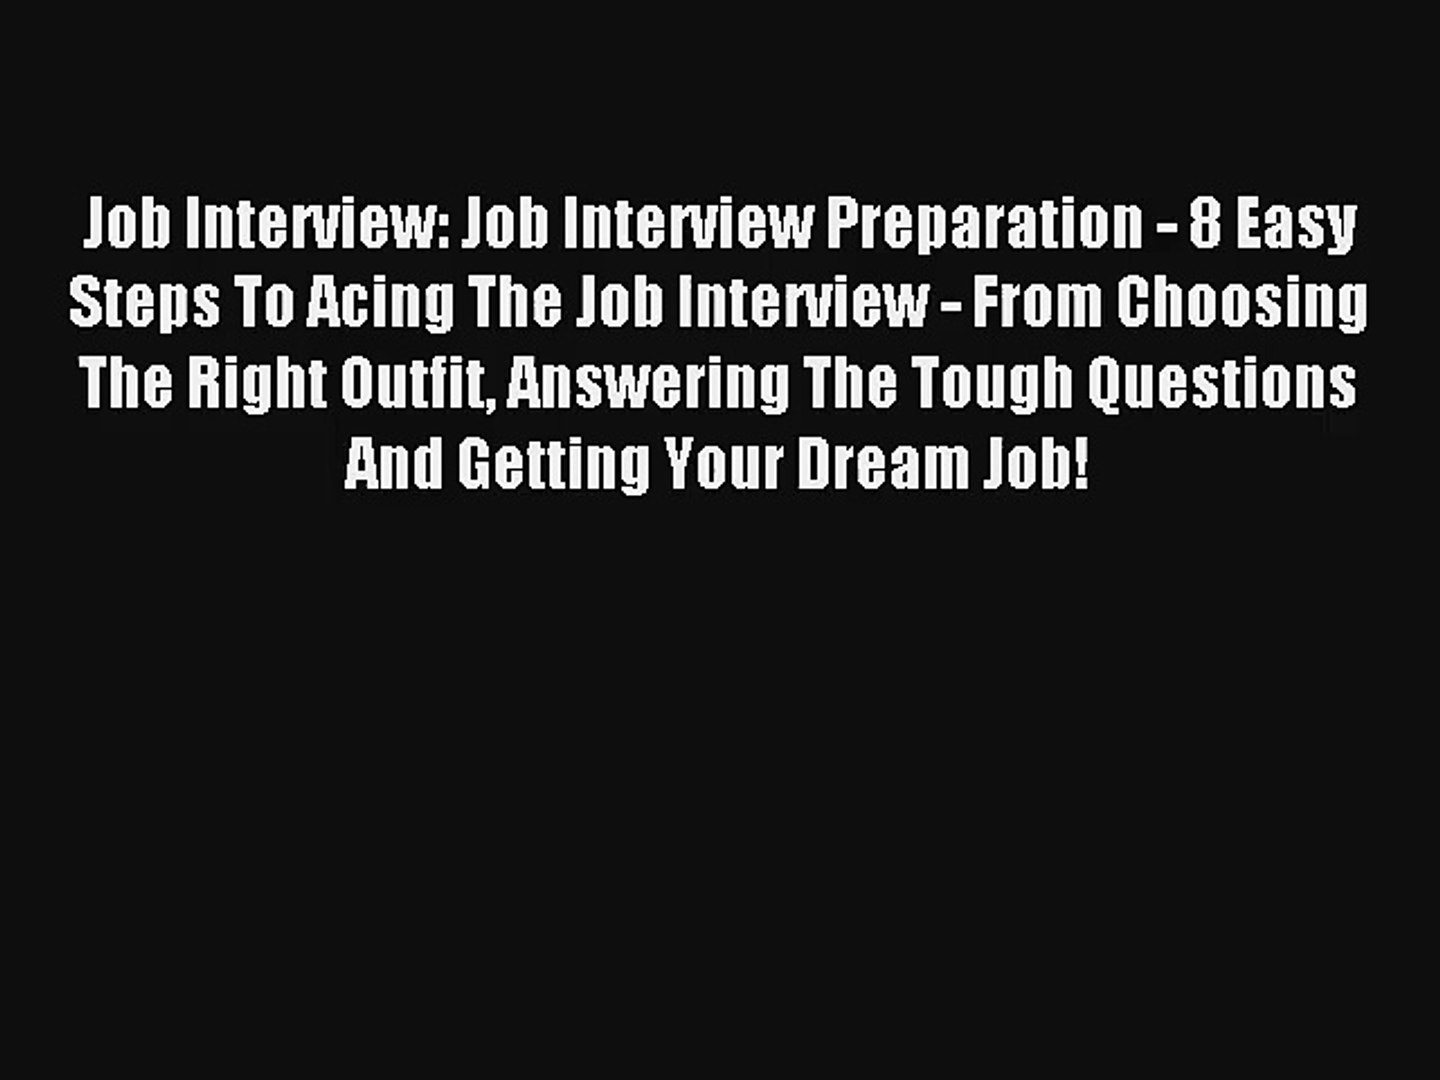 Job Interview: Job Interview Preparation - 8 Easy Steps To Acing The Job Interview - From Choosing